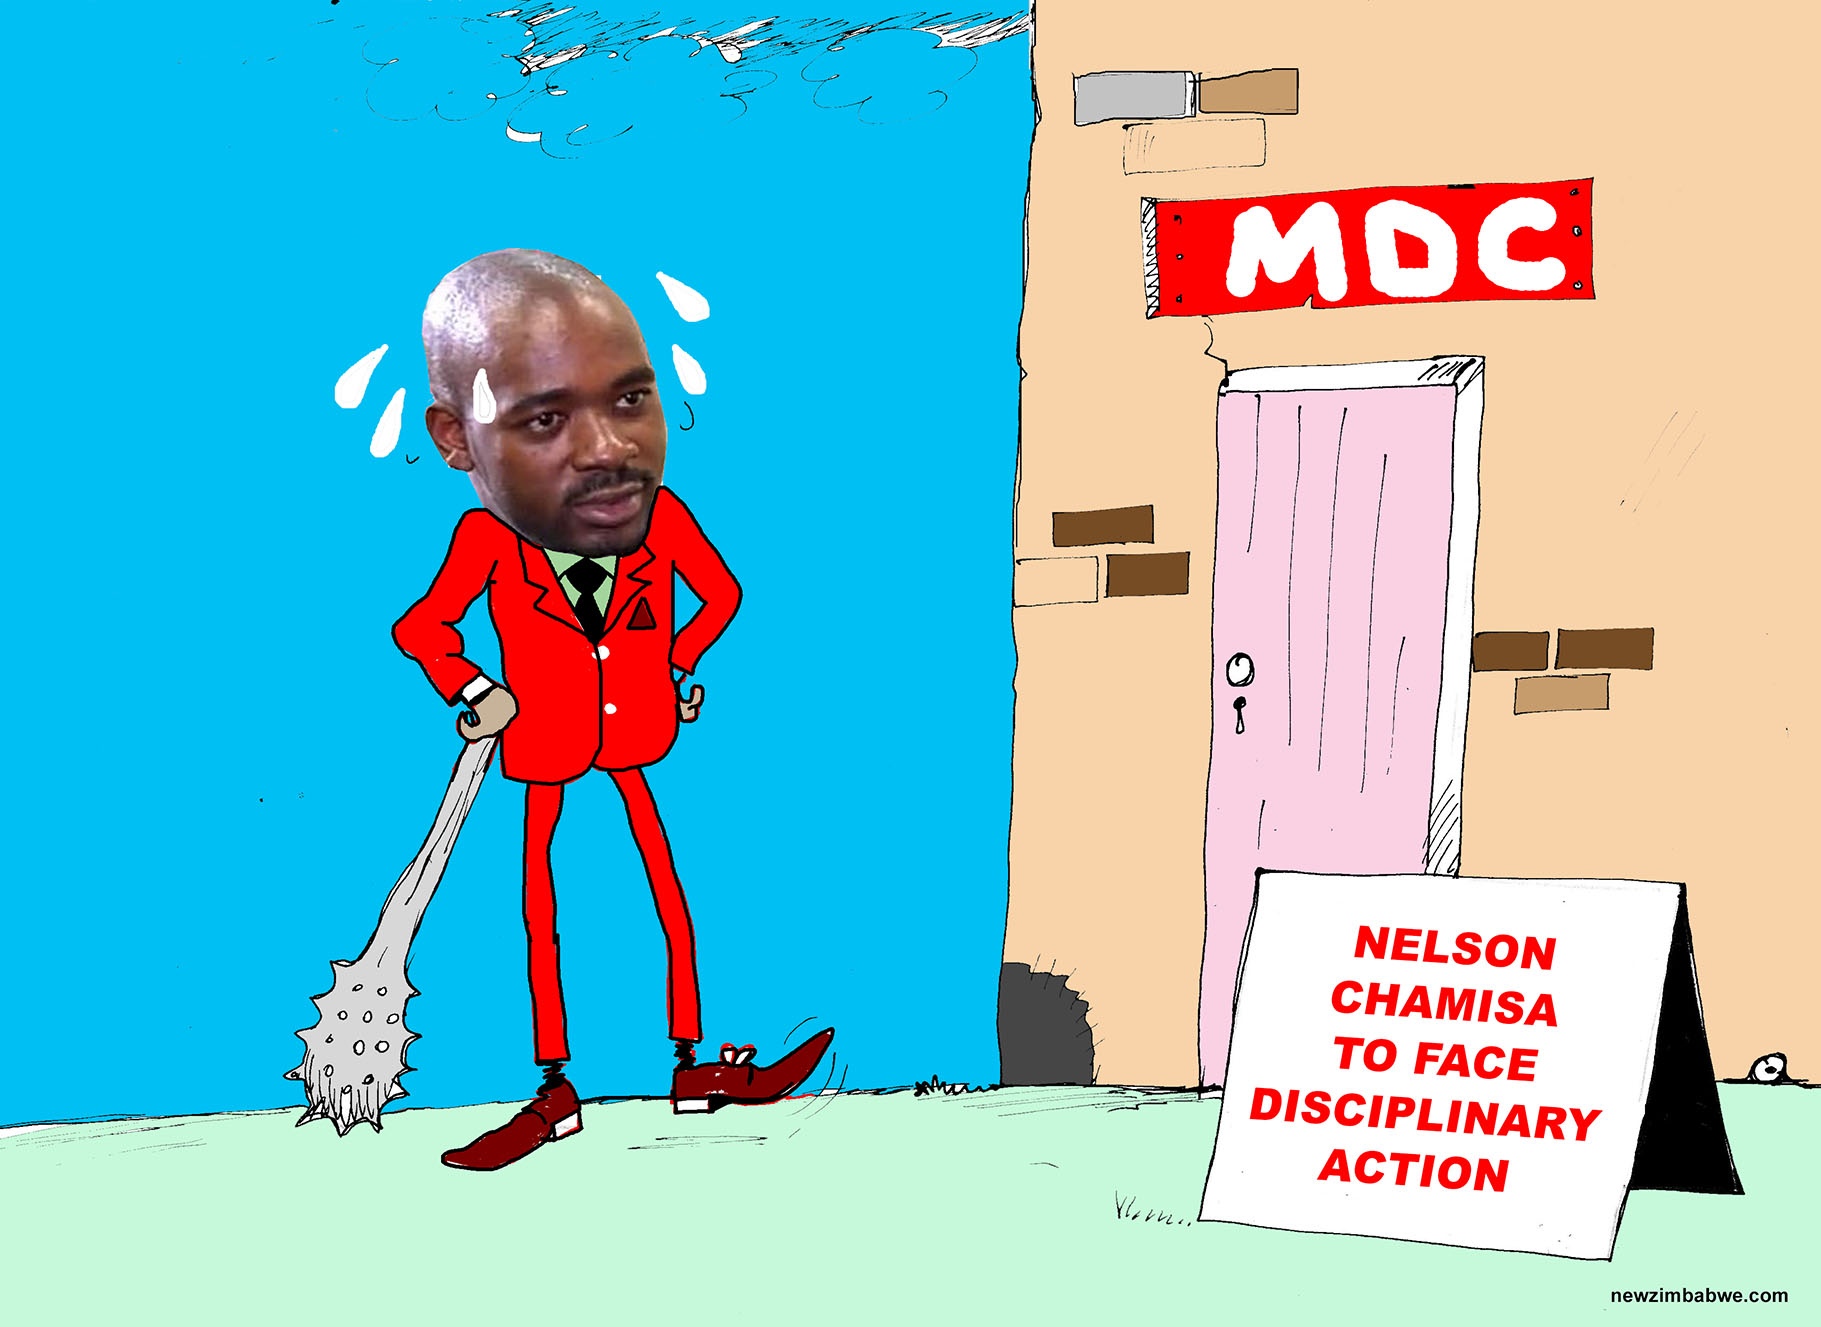 Chamisa to face disciplinary action